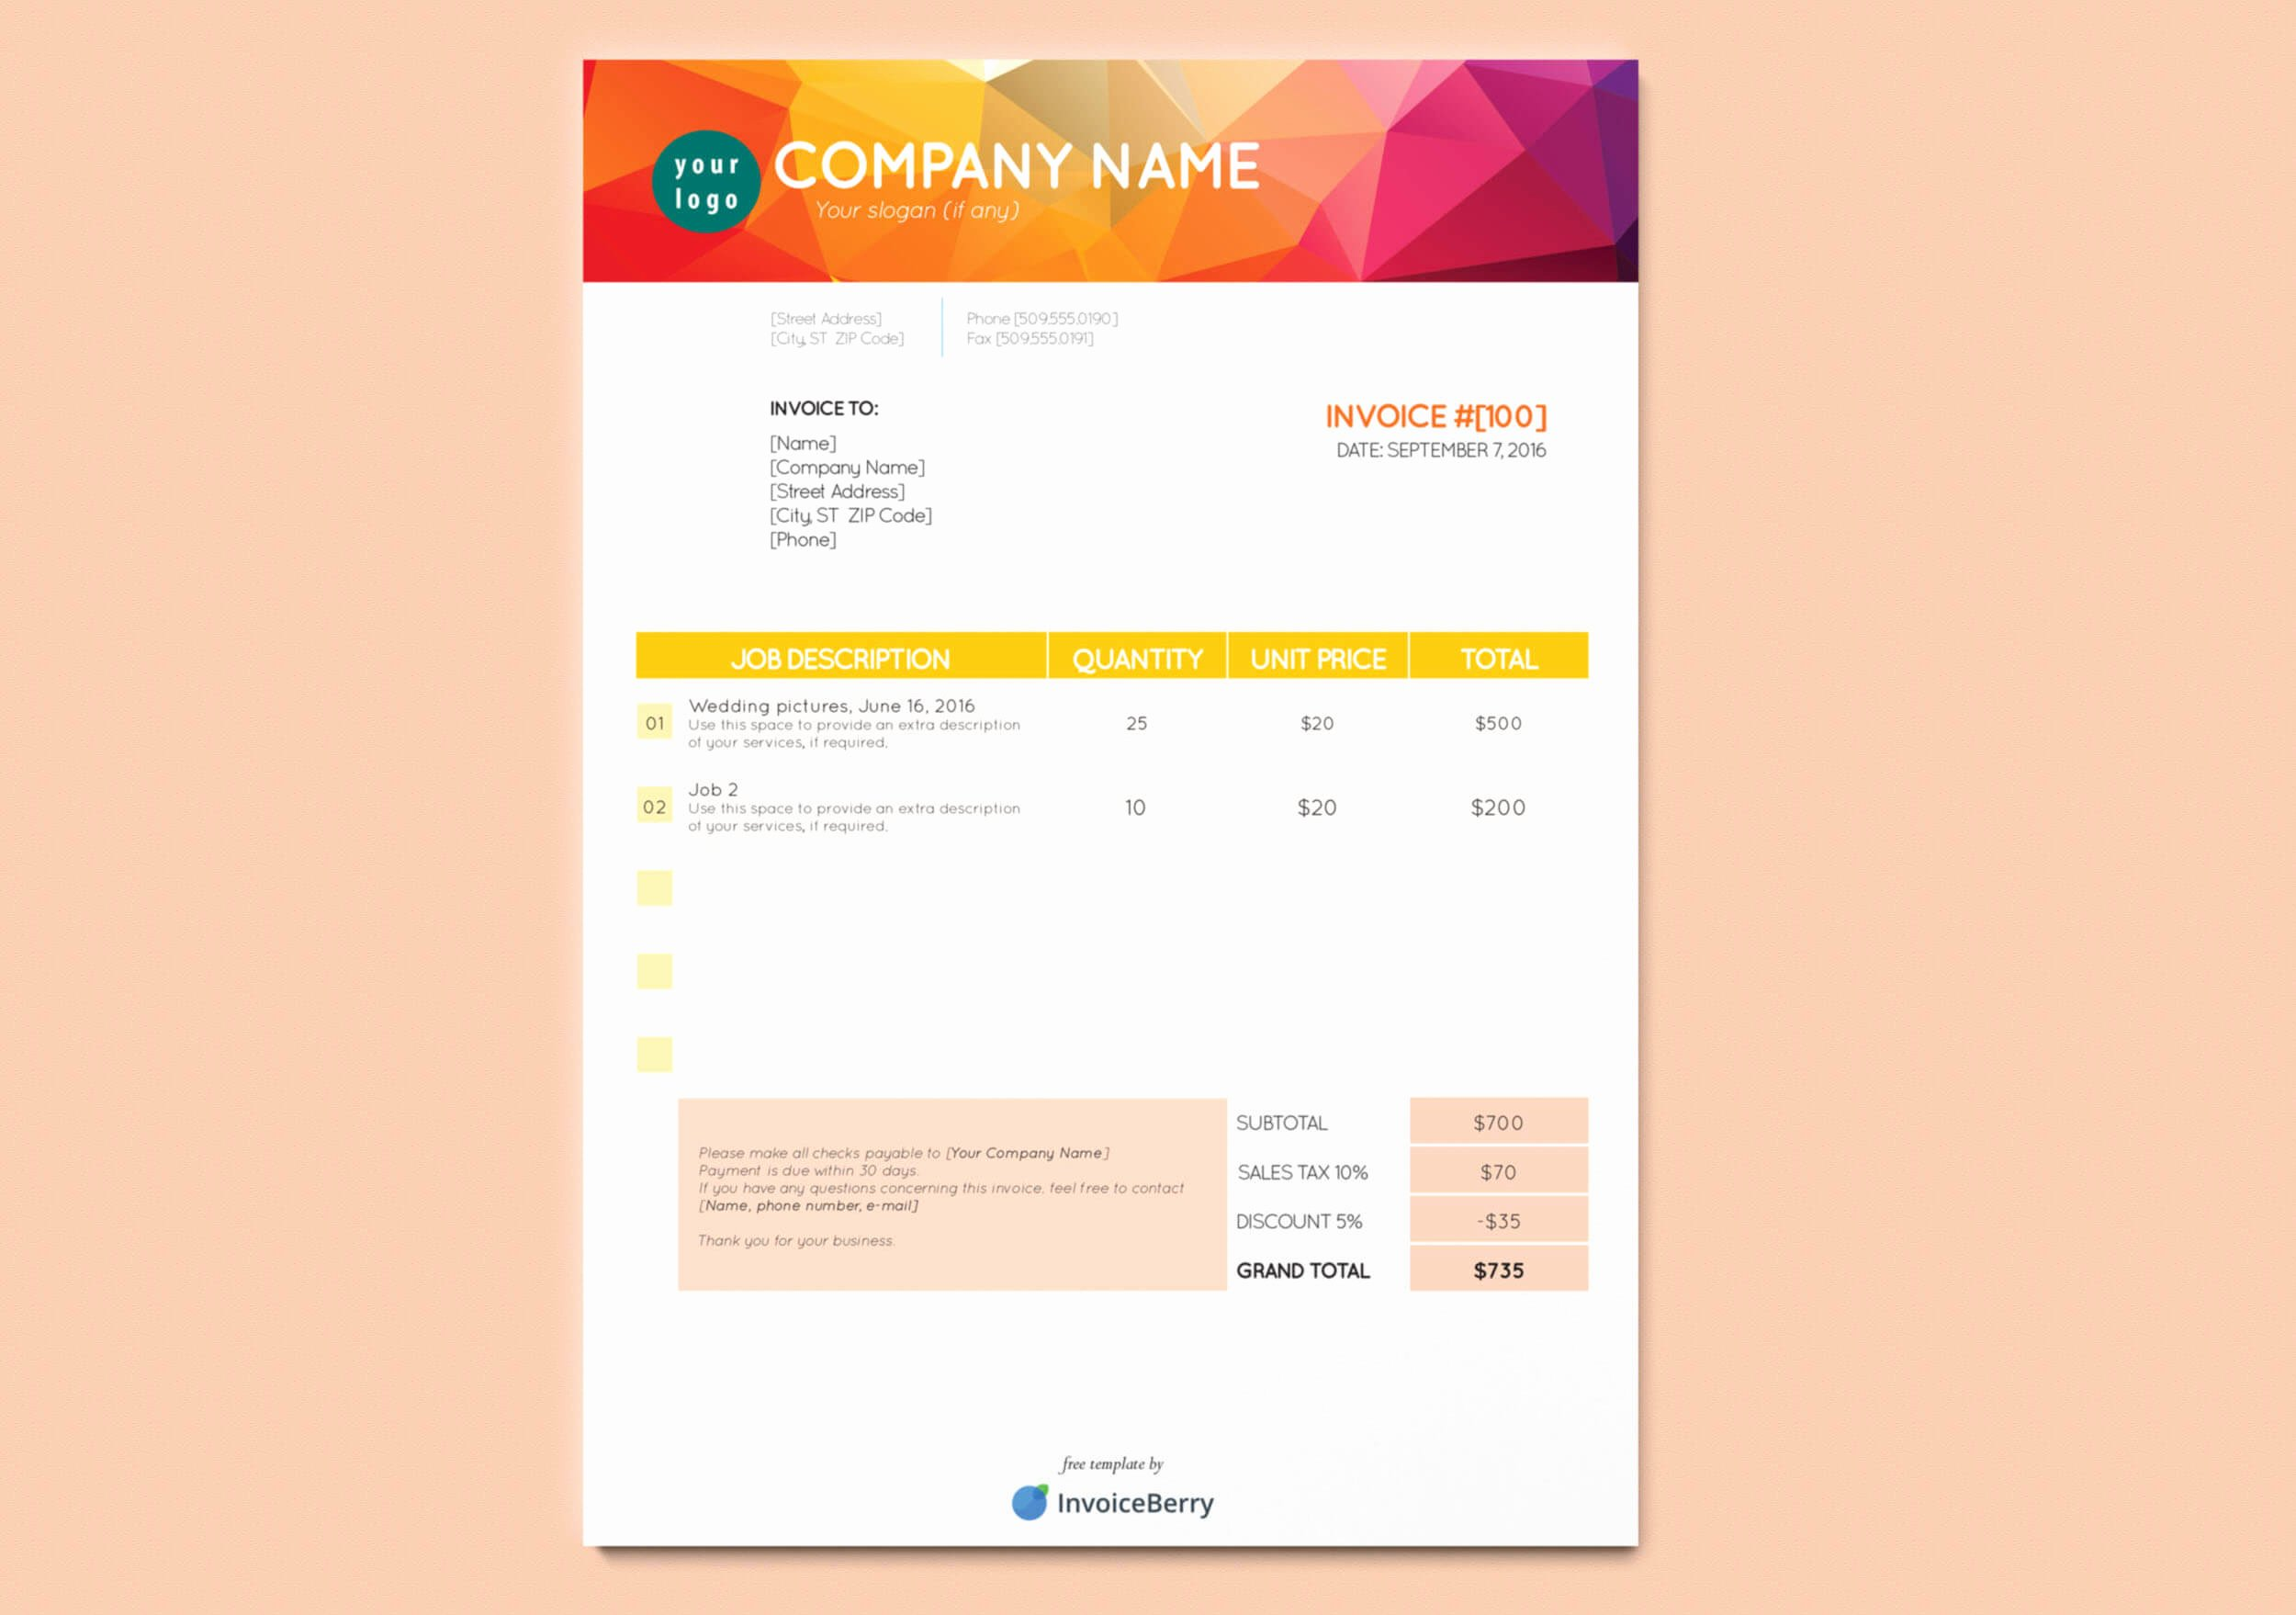 Free Indesign Invoice Template Luxury Free New Indesign Invoice Templates